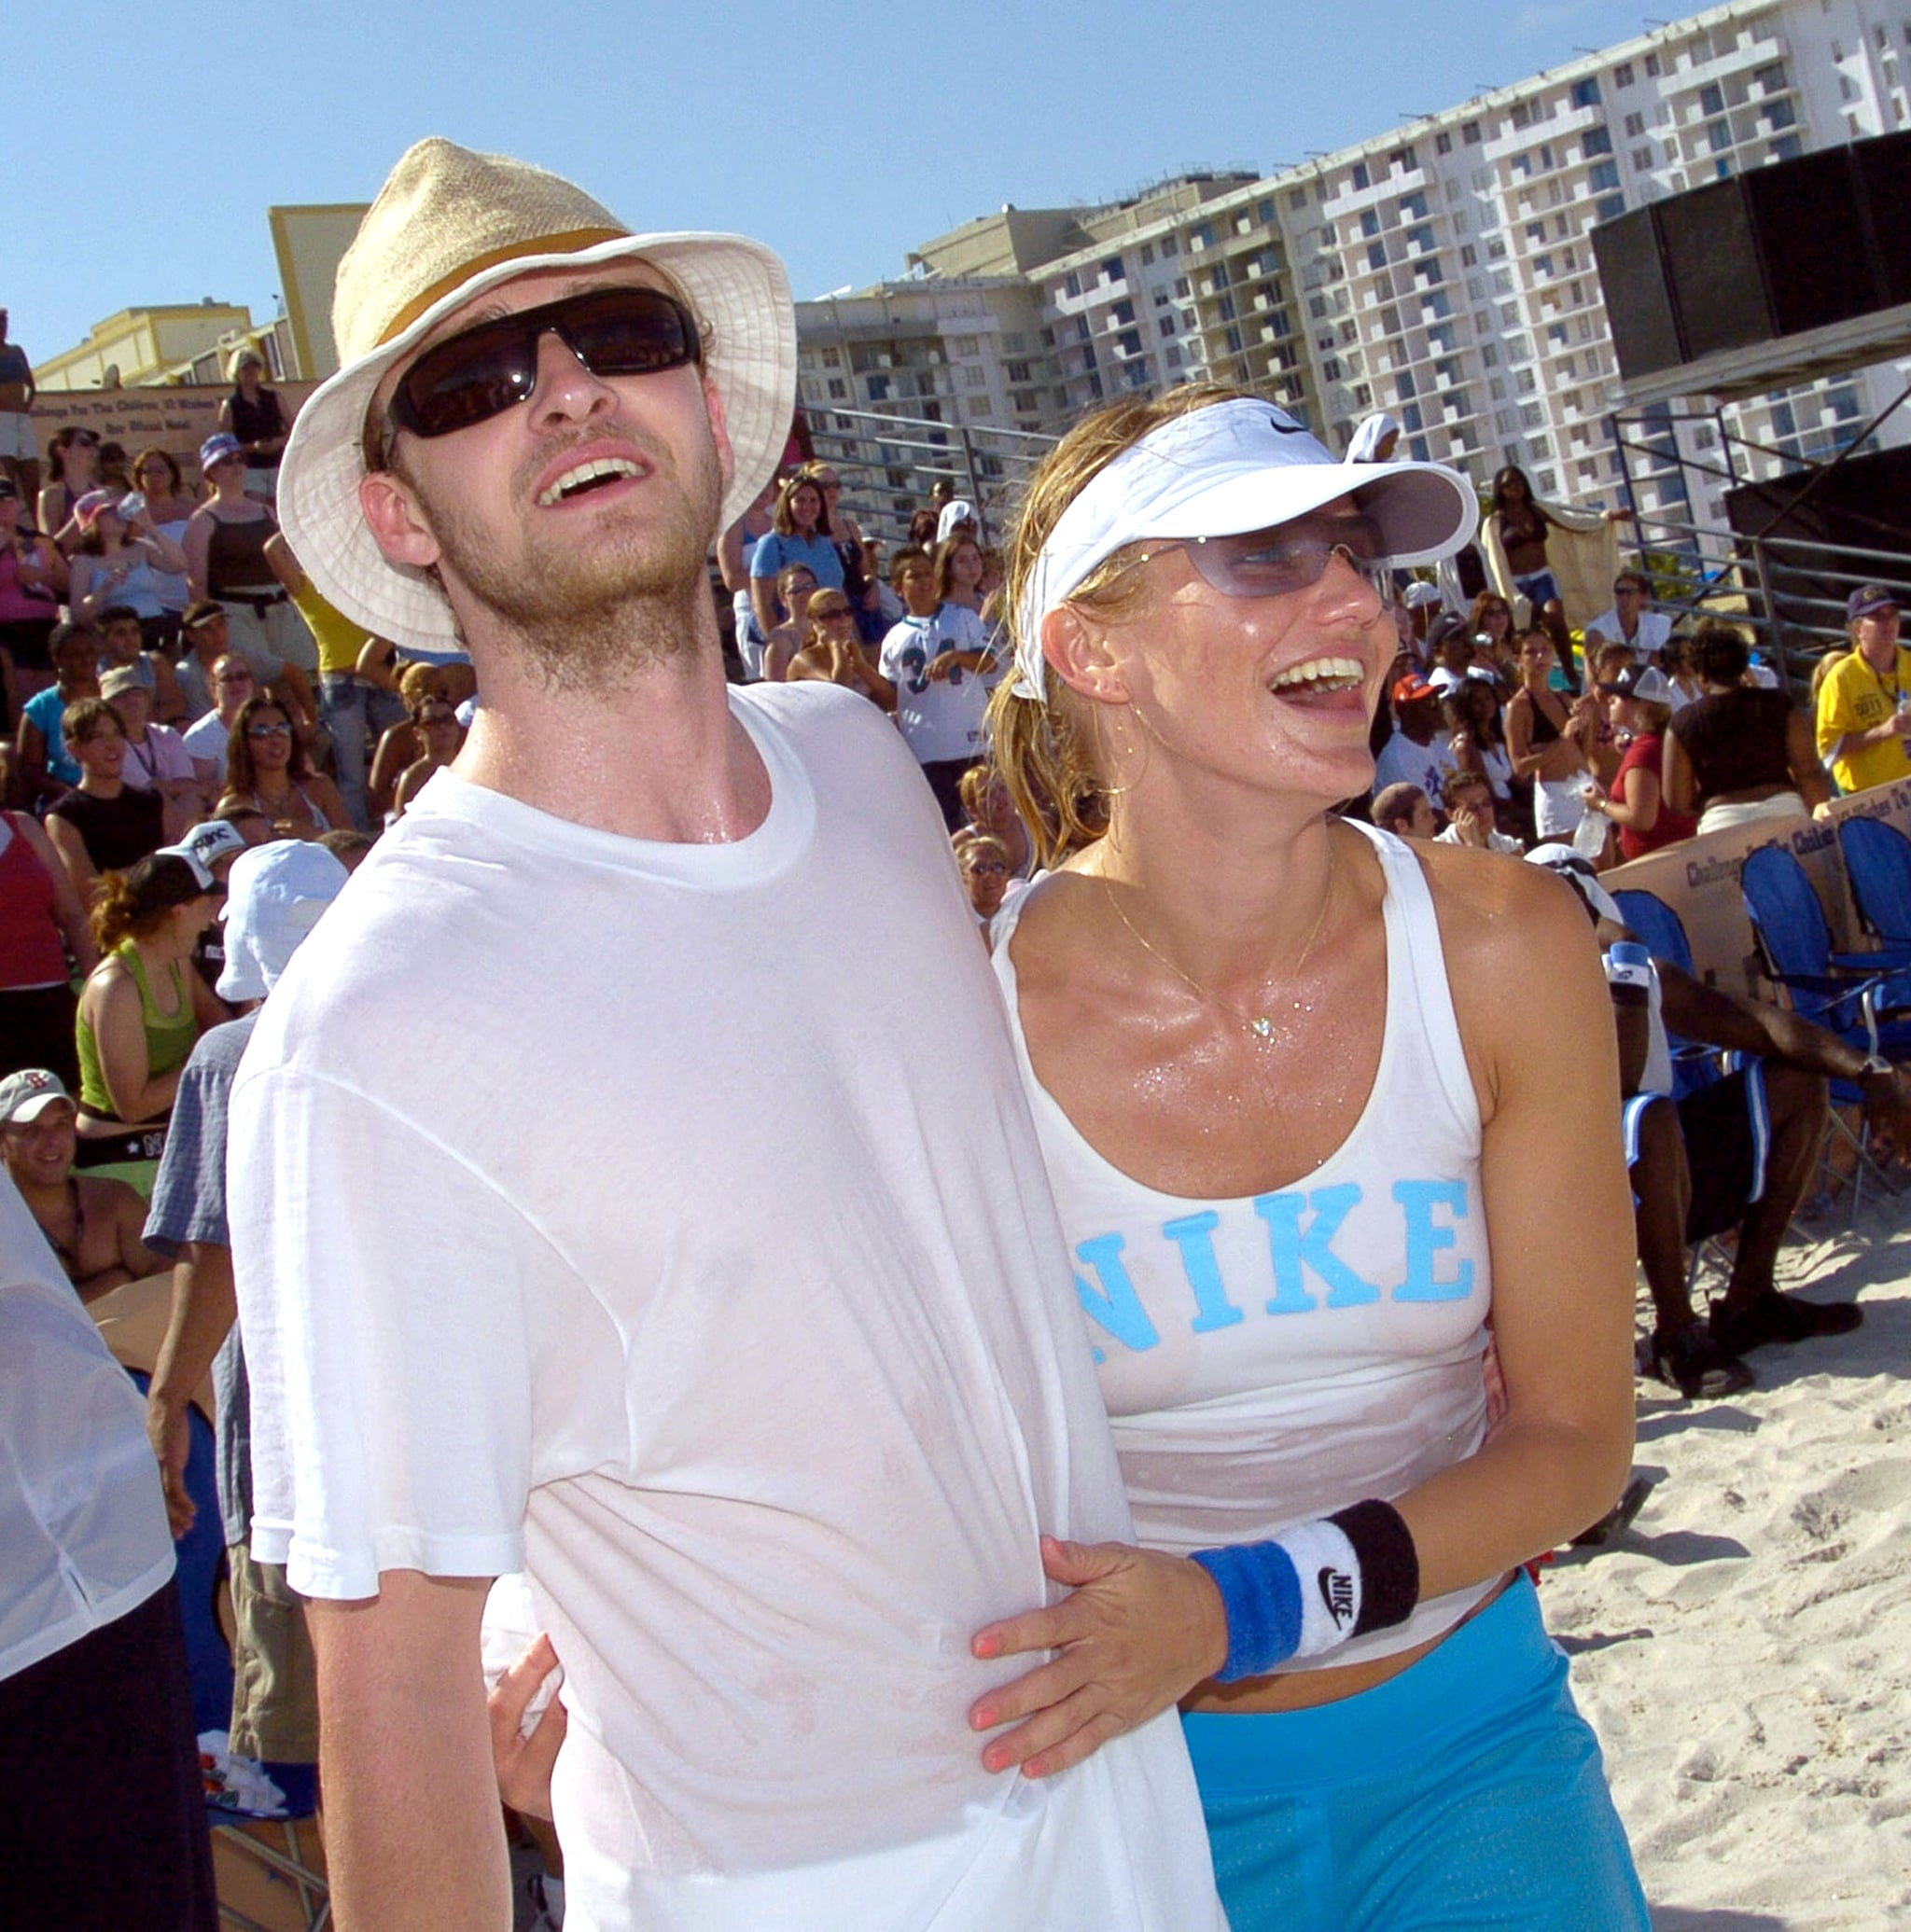 Meanwhile, Justin Timberlake and Cameron Diaz were dating.